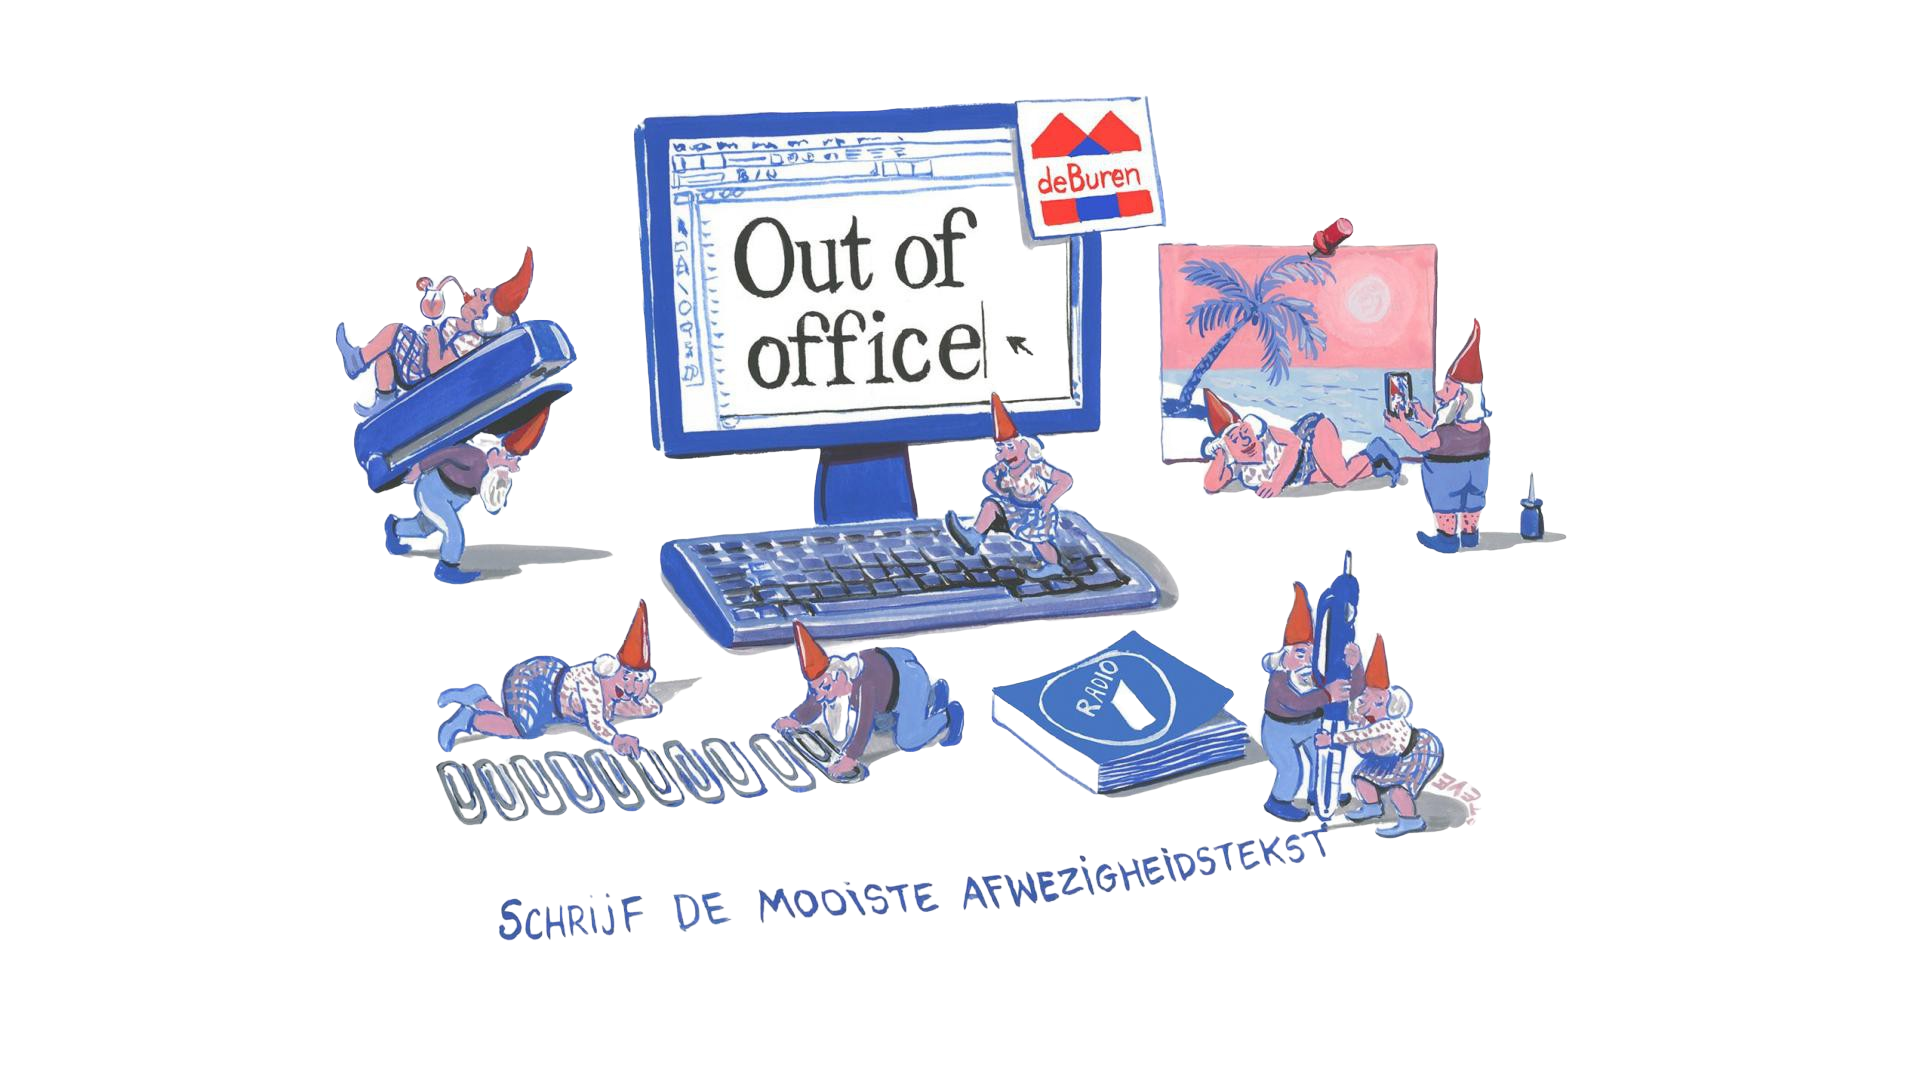 Out of office Radio1